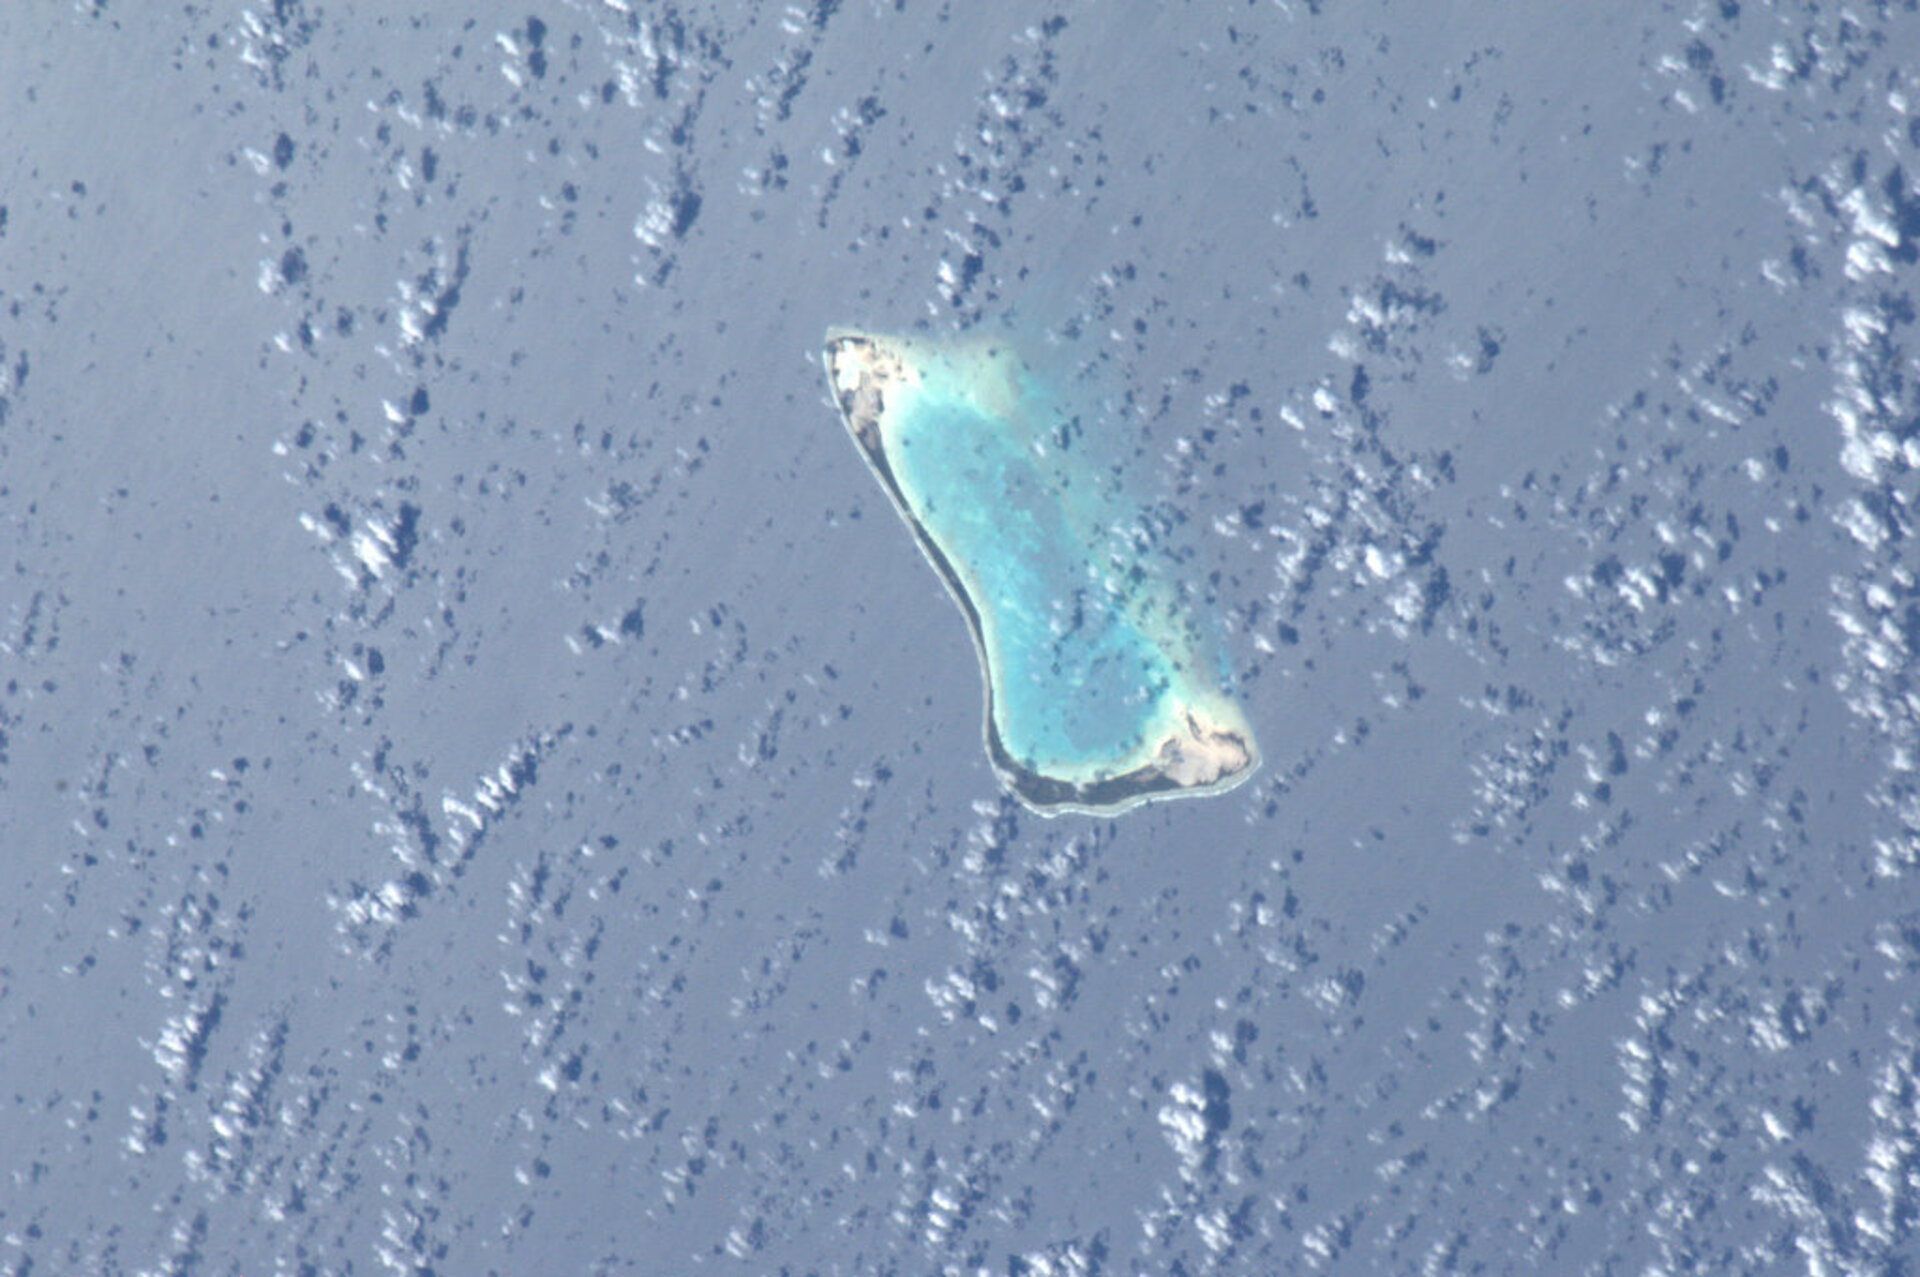 One of the Gilbert Islands, Pacific Ocean